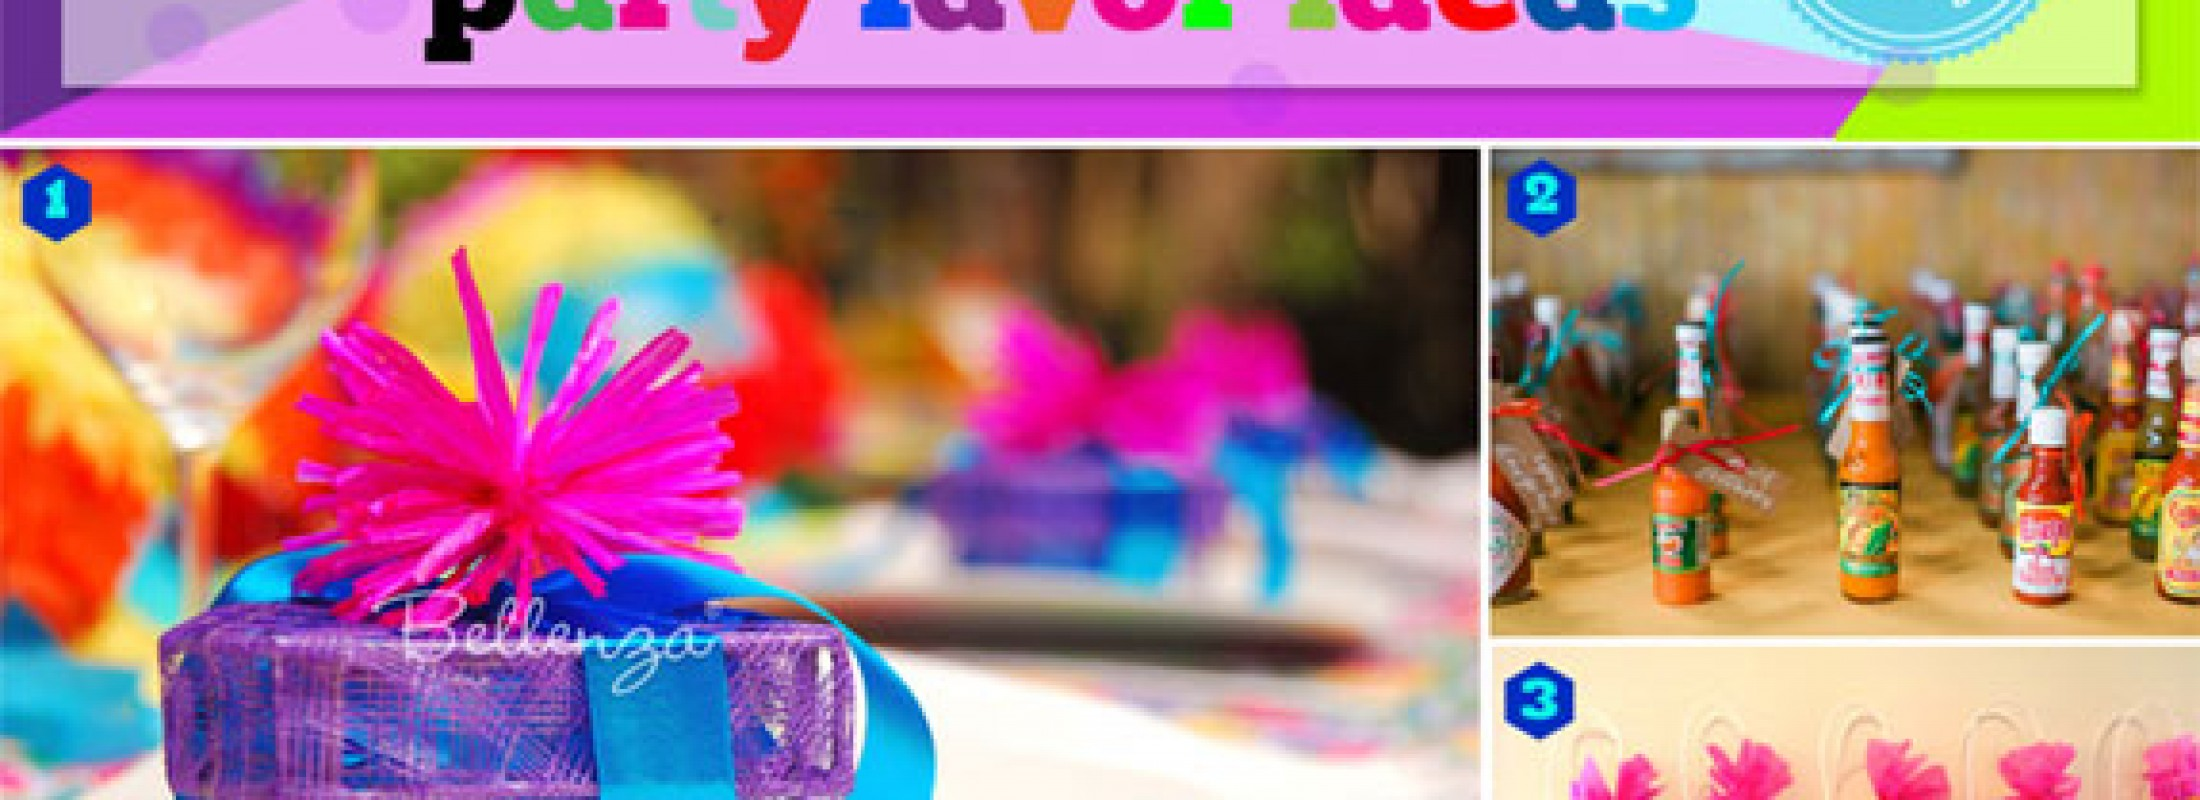 10 Fun Cinco de Mayo Favor Ideas with a Fiesta-filled Vibe!